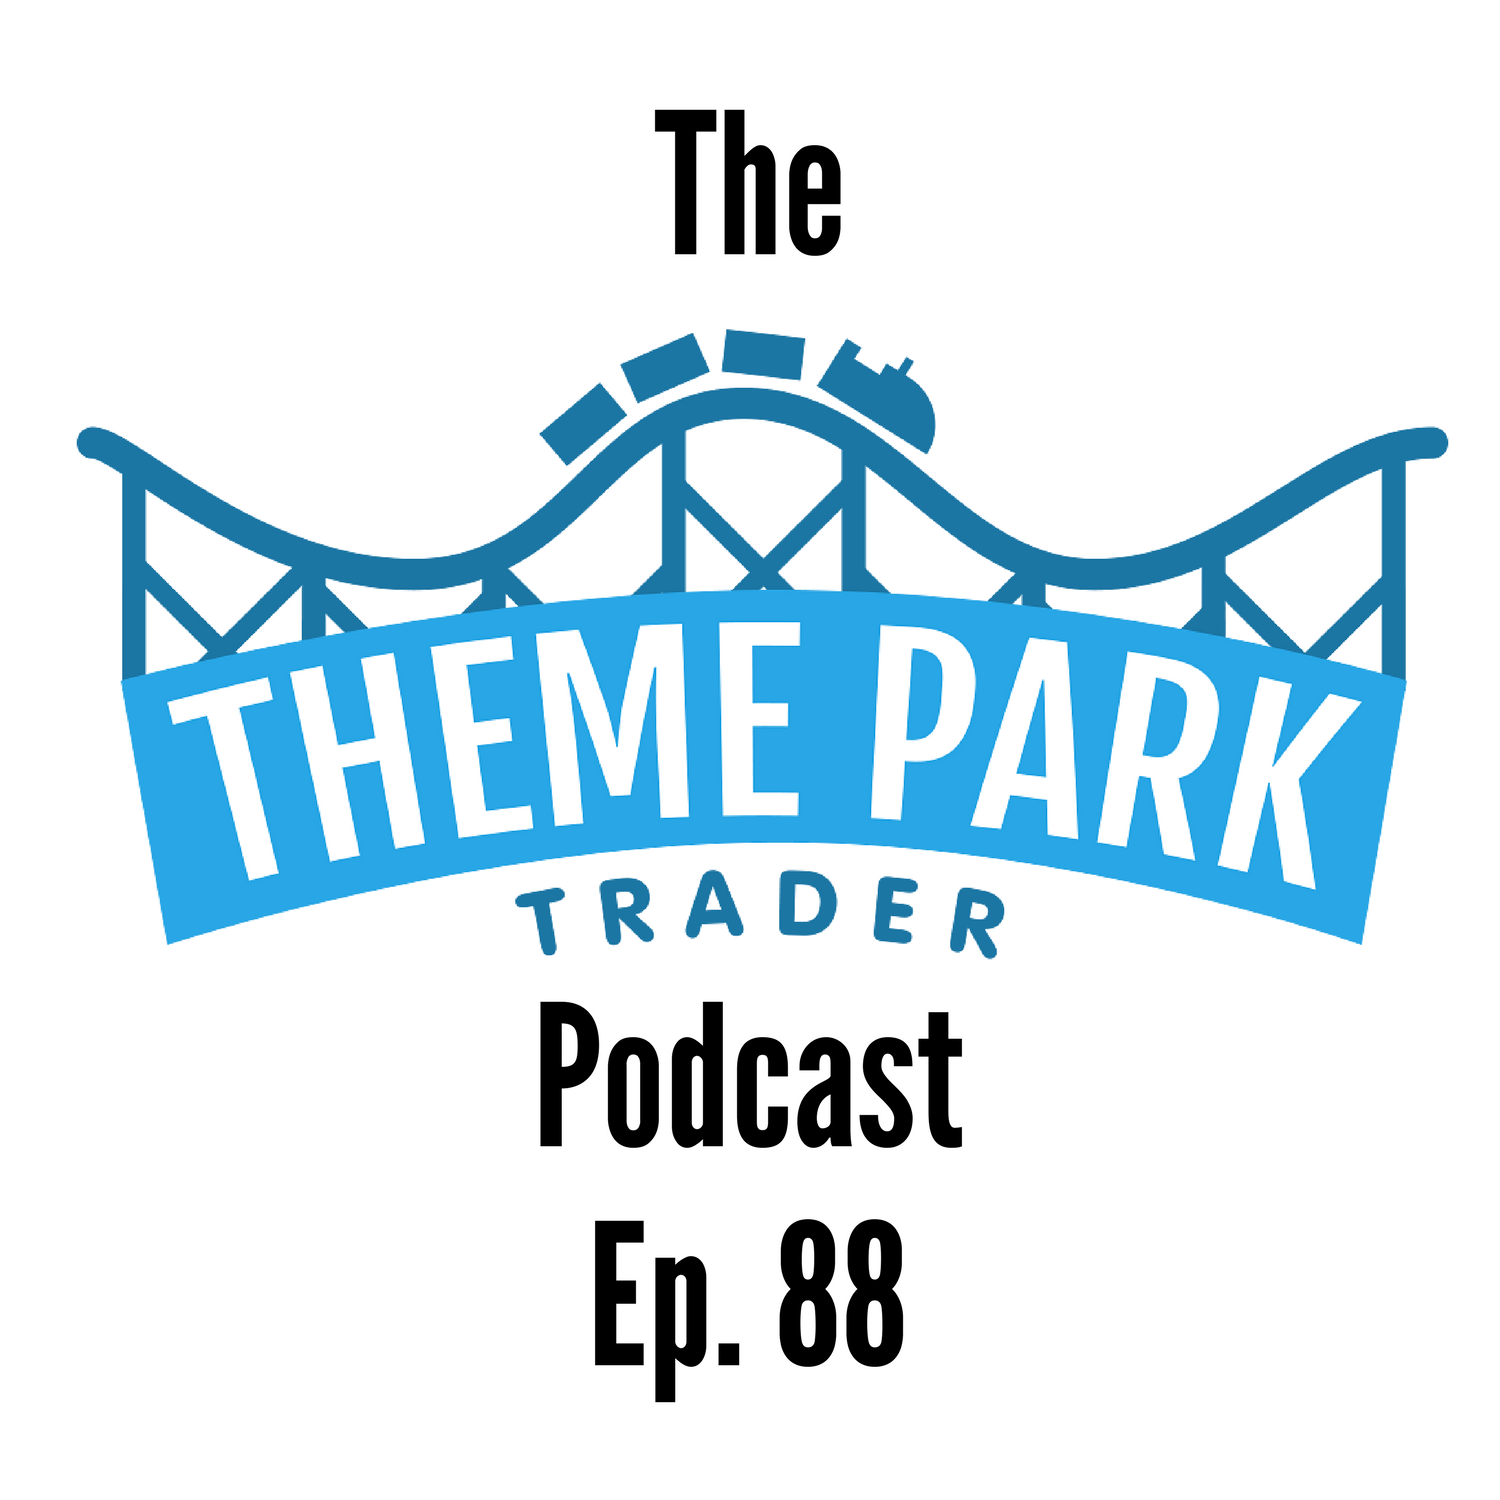 Episode 88 - What Attraction Our Fans Would Remove from WDW & Why!